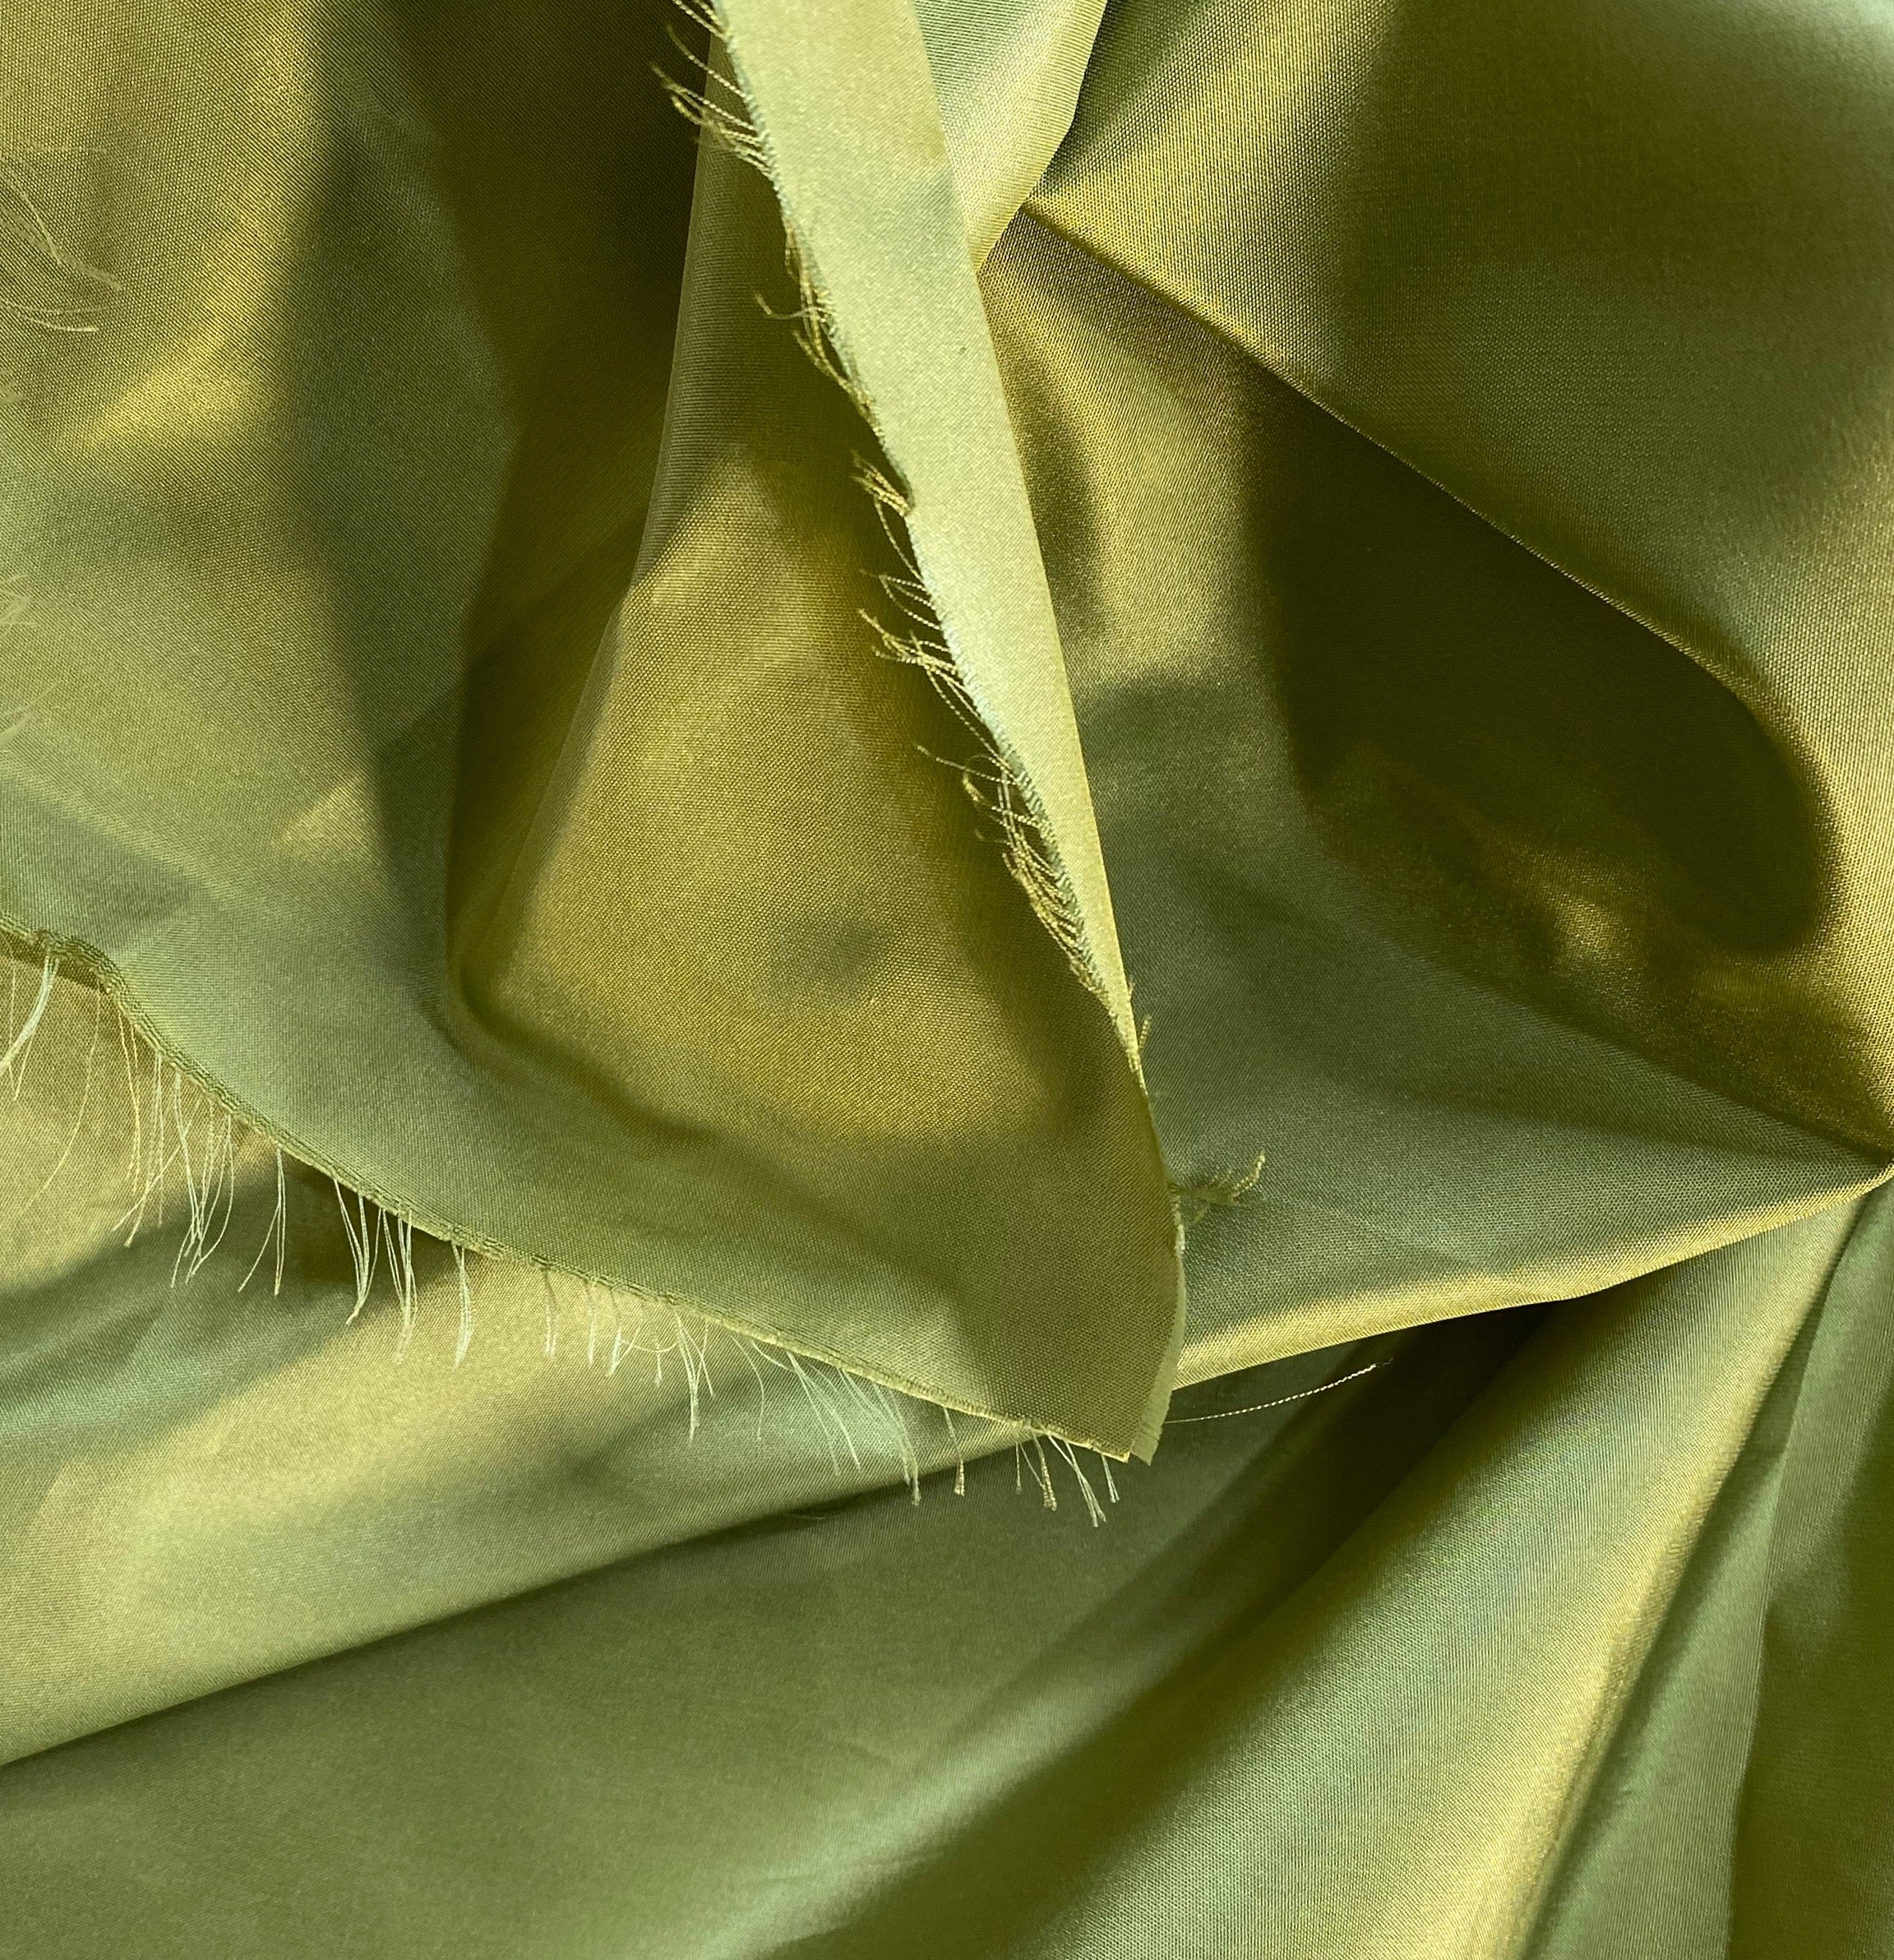 NEW Lady Lisa Designer 100% Silk Taffeta Fabric - Solid Pistachio Green